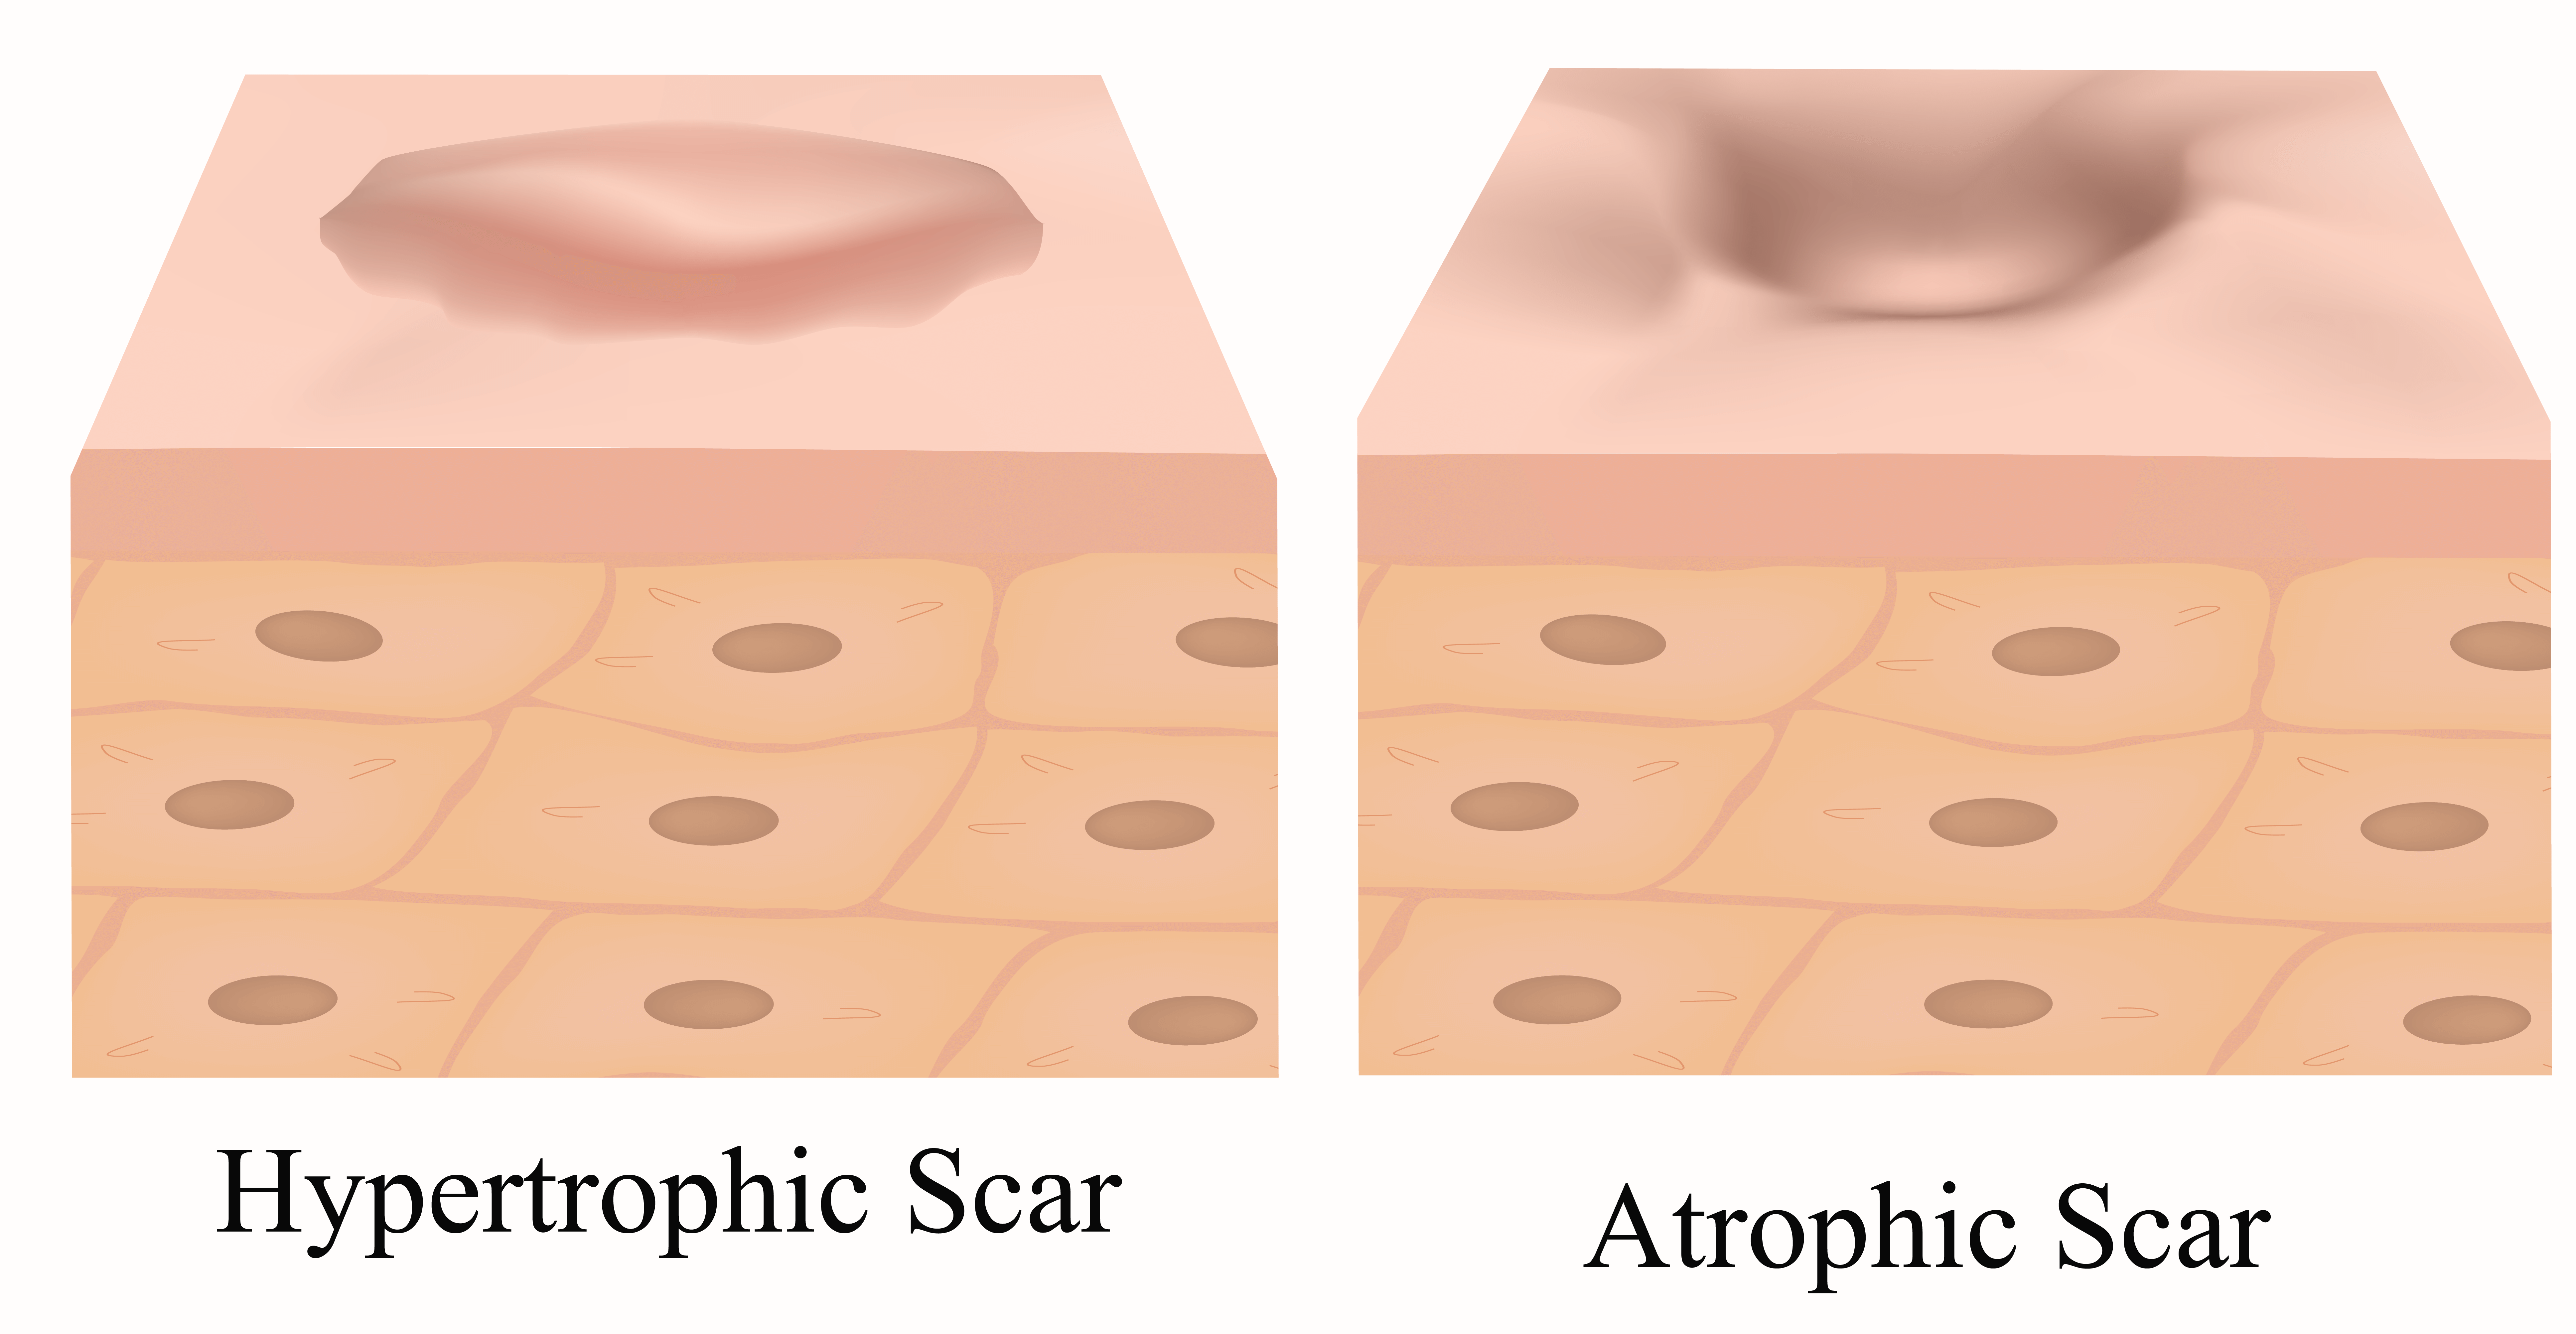 Type of Acne Scars - Hypertrophic Scar and Atrophic Scar